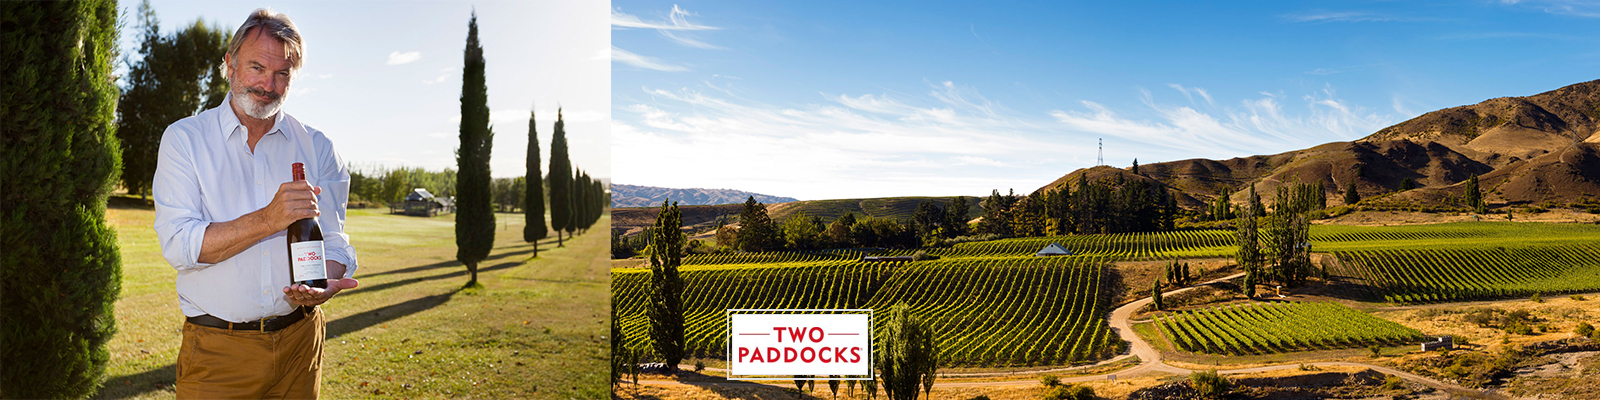 banner-two-paddocks-wines.jpg